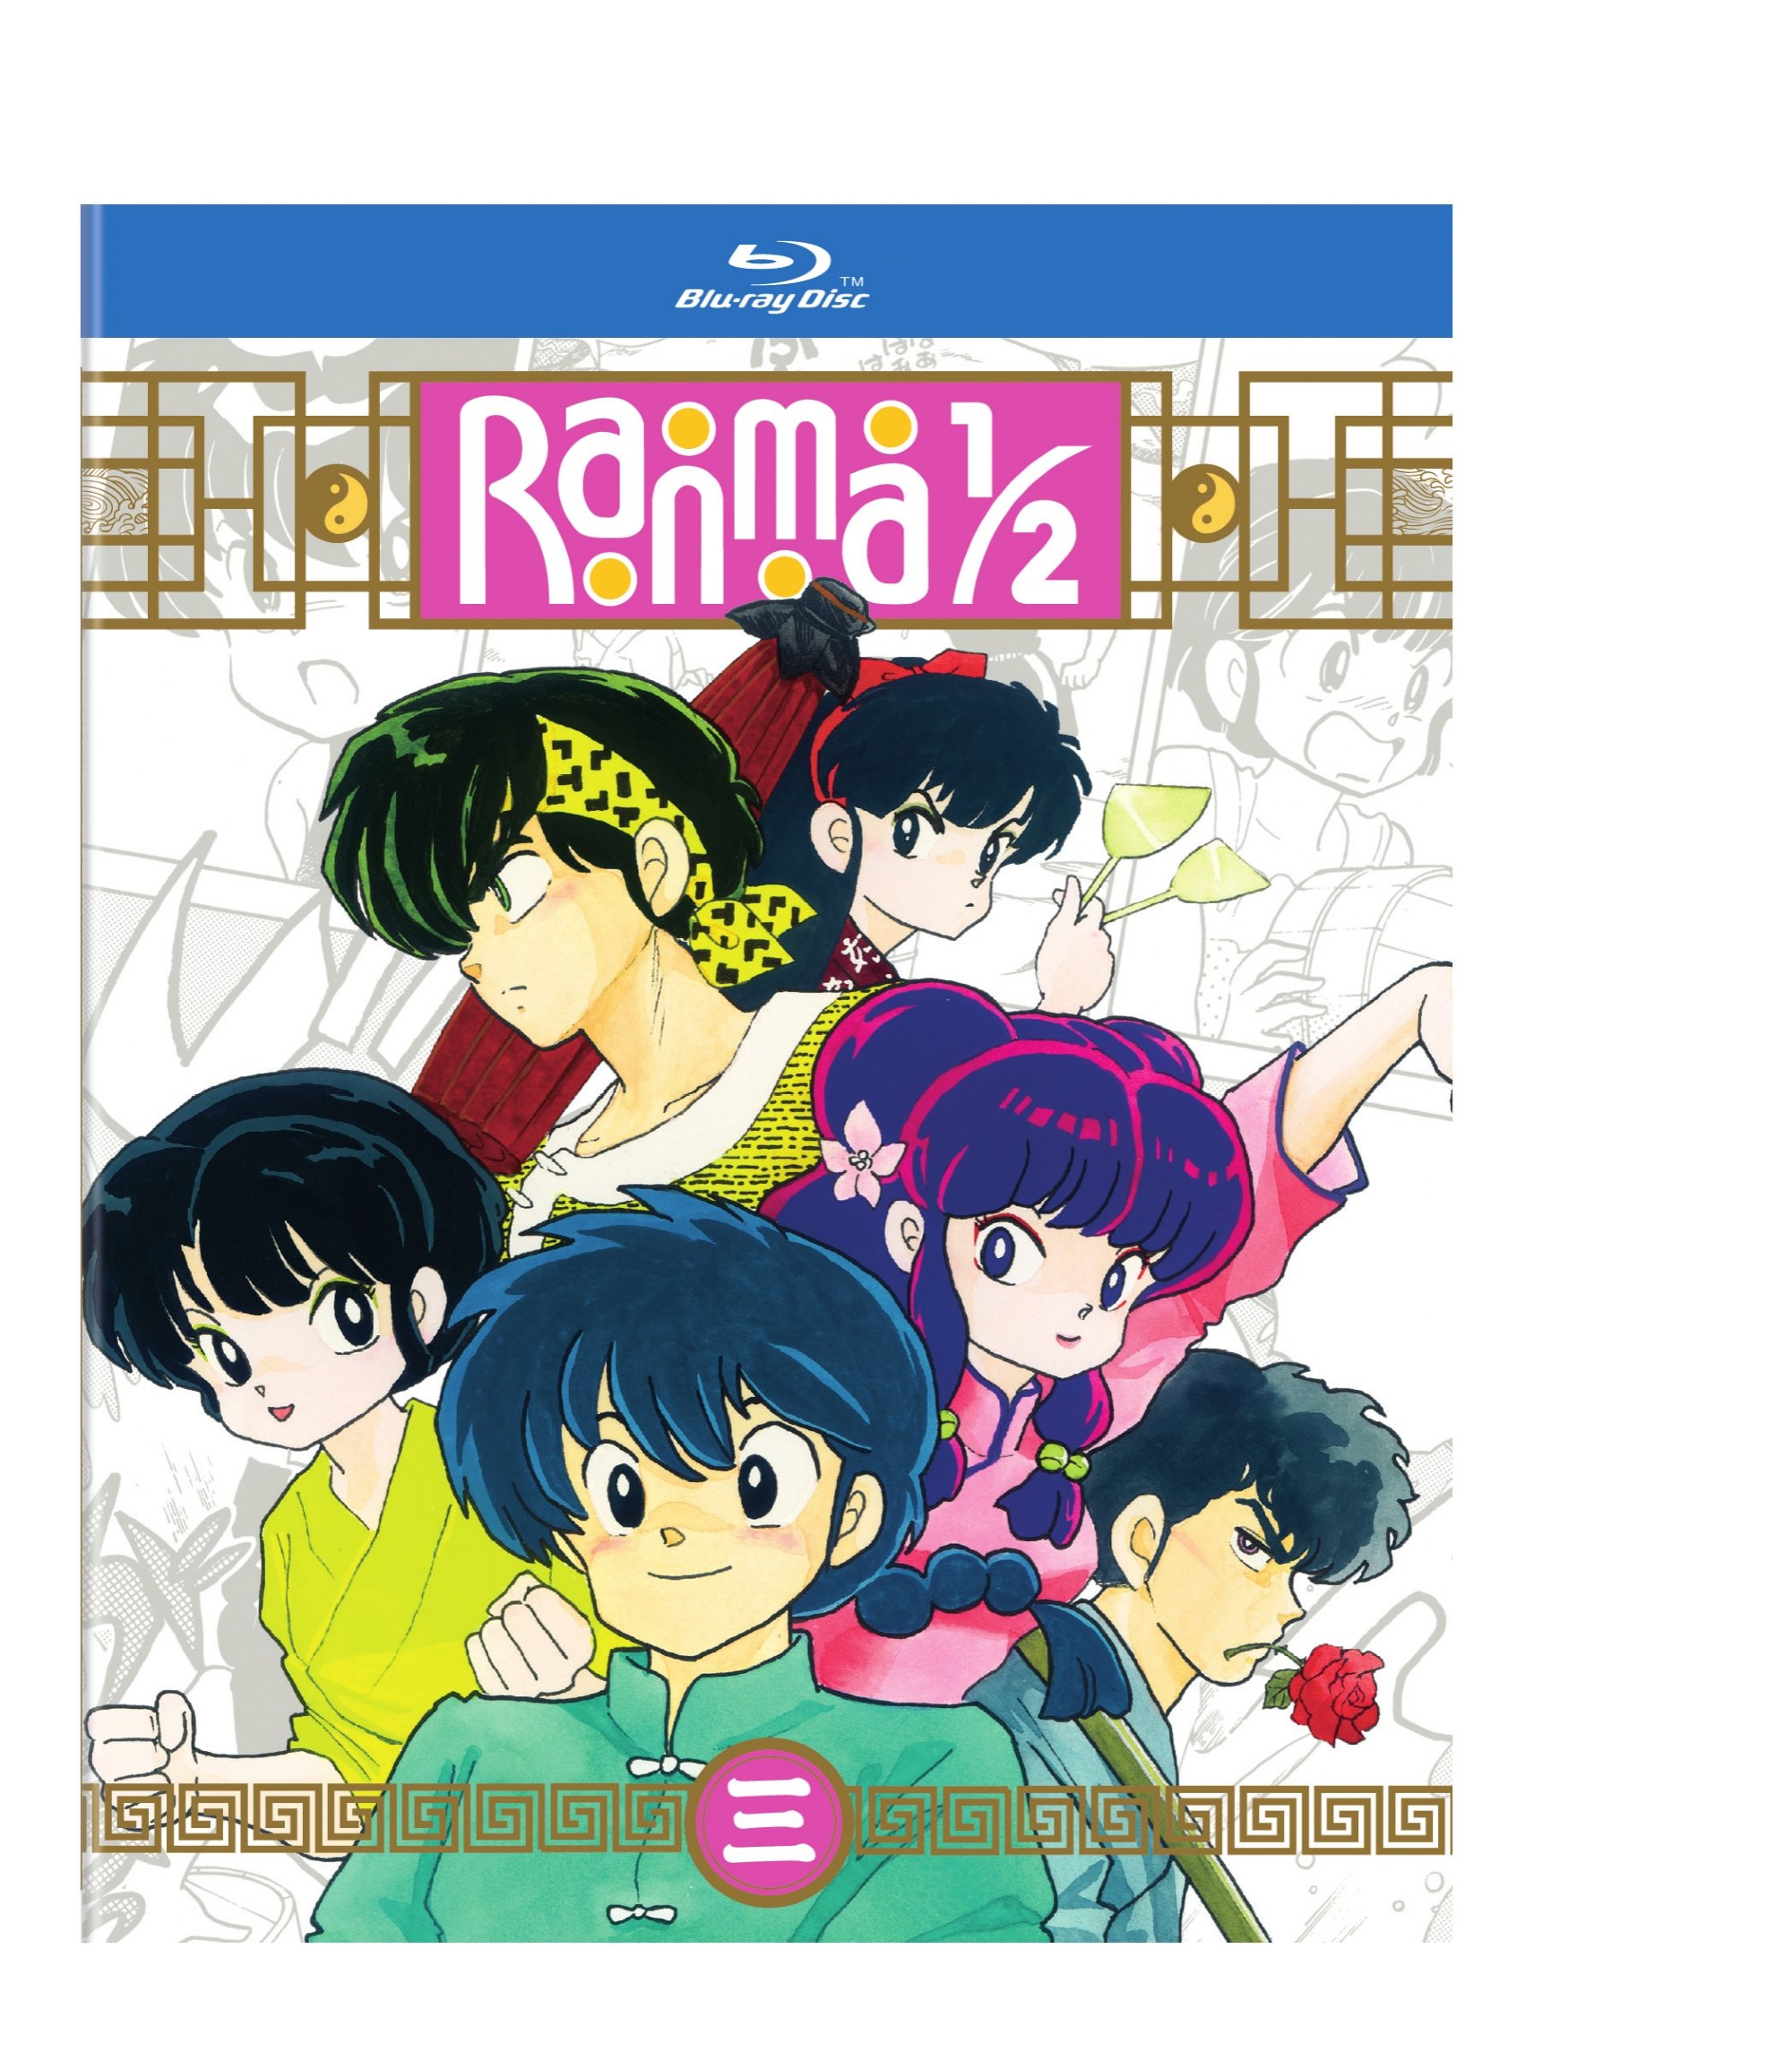 Ranma 1/2 Standard Edition Blu-ray Set 3 782009244578